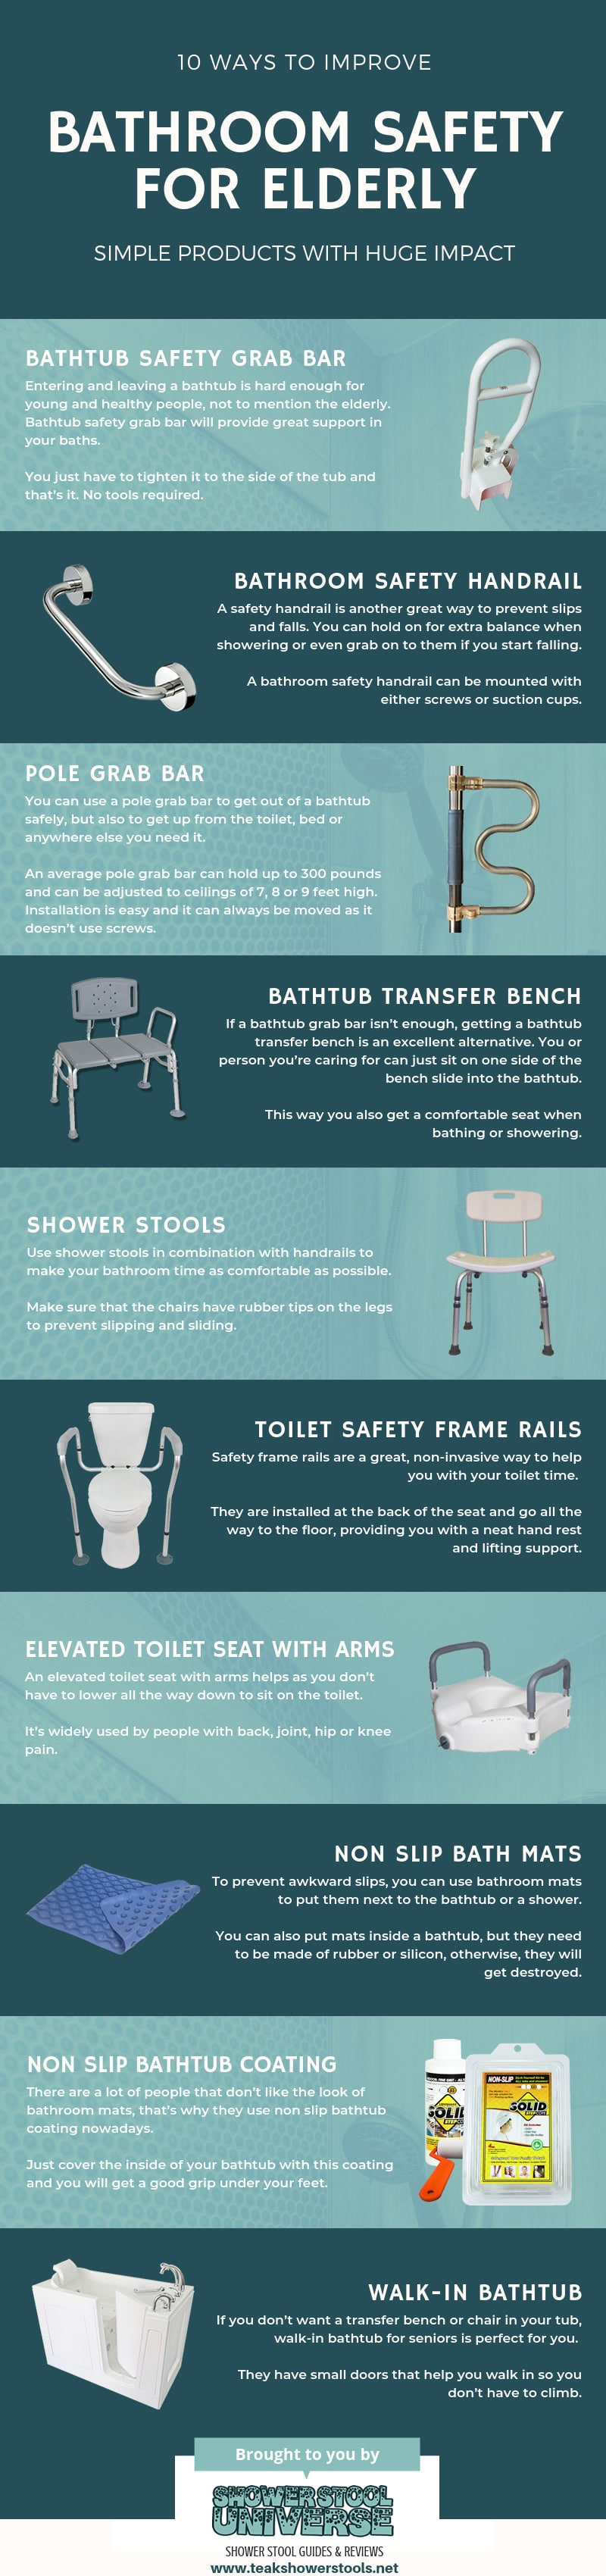 Bathroom safety for elderly